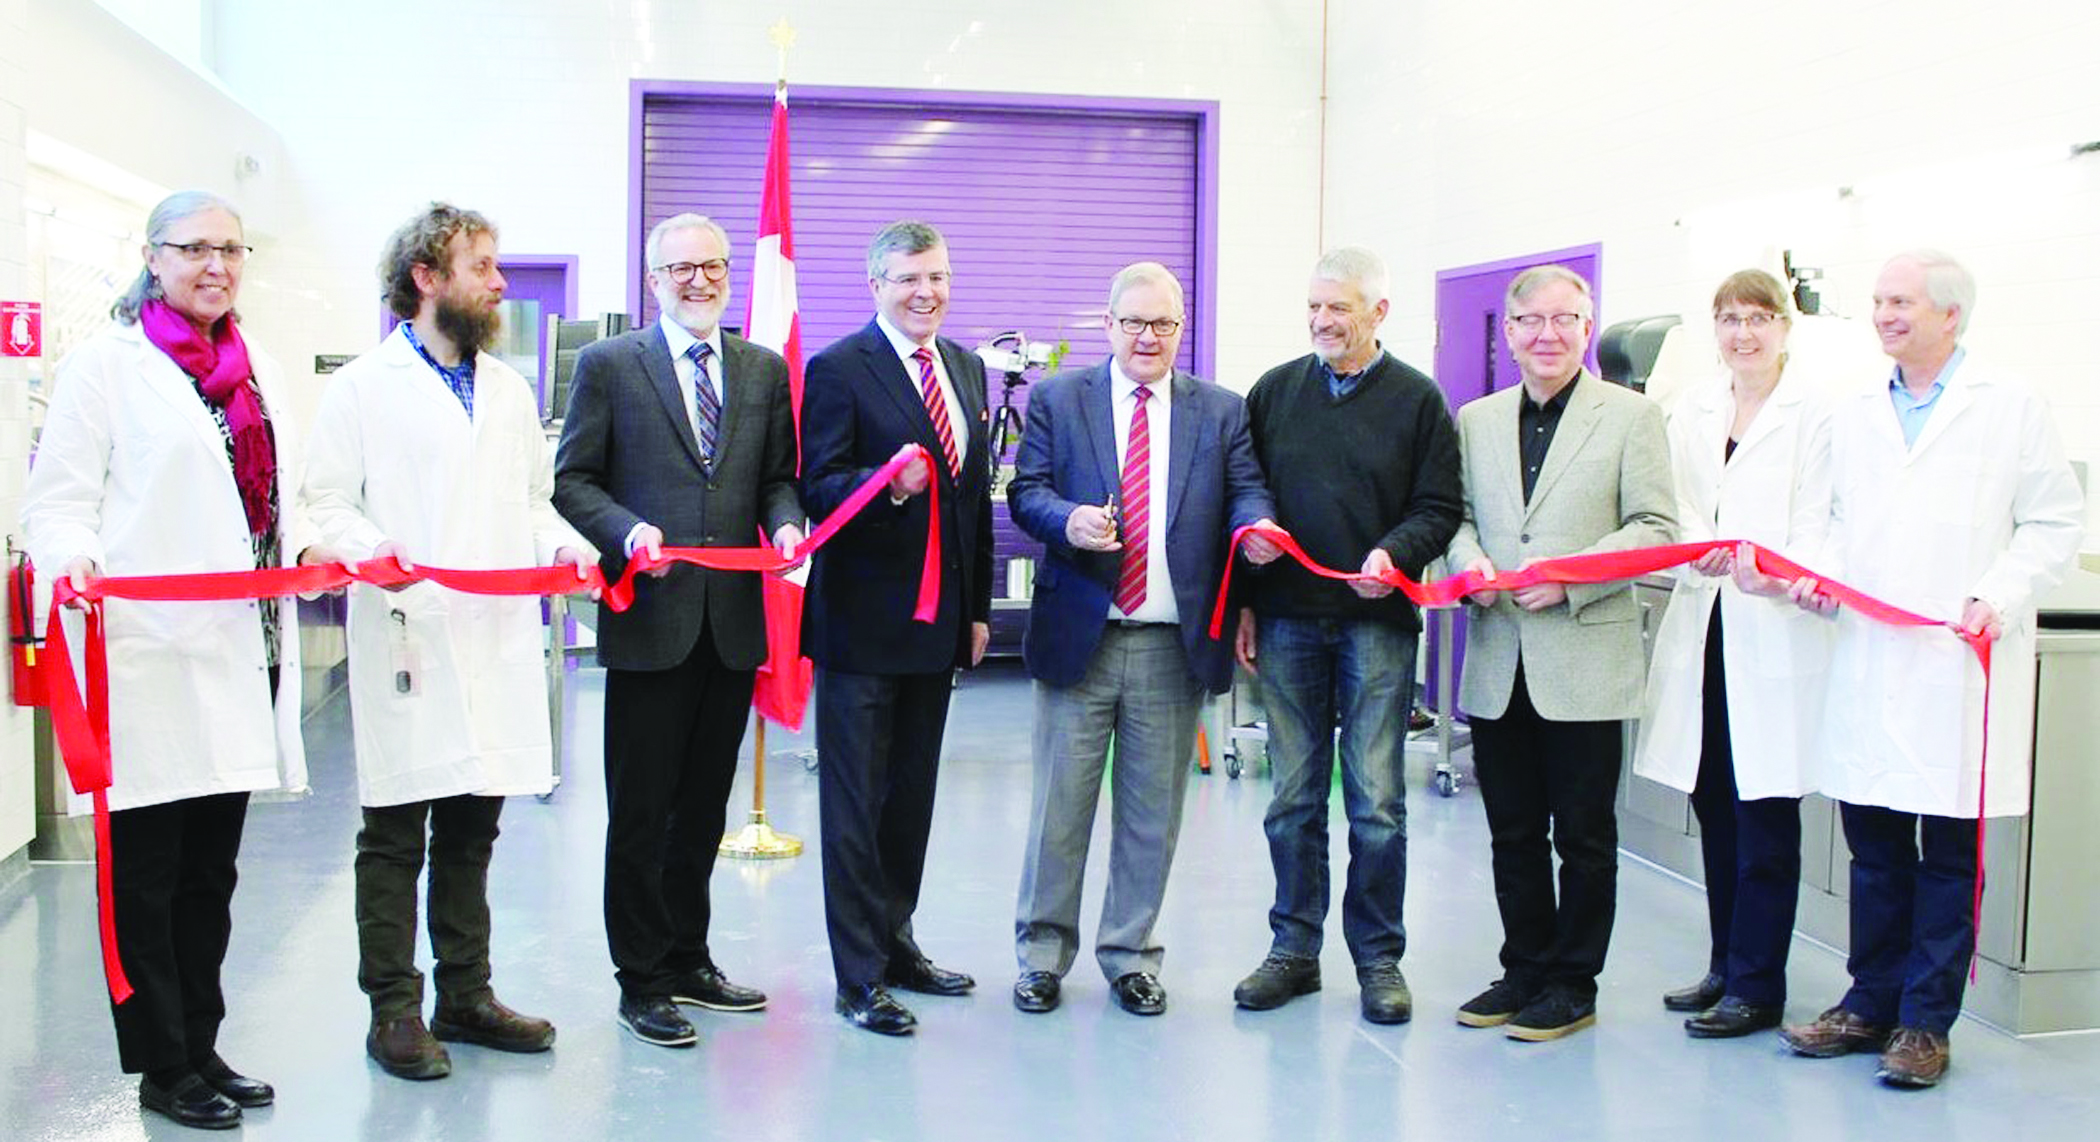 Lawrence MacAulay was in Nova Scotia's Annapolis Valley on Feb. 28, which turned out to be his last day as the federal agriculture minister before being shuffled into Veterans Affairs. MacAulay joined wine industry professionals, grape producers, and research scientists for the grand opening of the Kentville Research and Development Centre's new research winery facility. Pictured, from left, are Dr. Deb Moreau, Dr. Harrison Wright, Dr. Girard Benoit, Alex MacDonald, MacAulay, Bruce Wright, Dr. Mark Hodges, Dr. Shawna MacKinnon, and Dr. Charles Forney. (Emily Leeson photo)